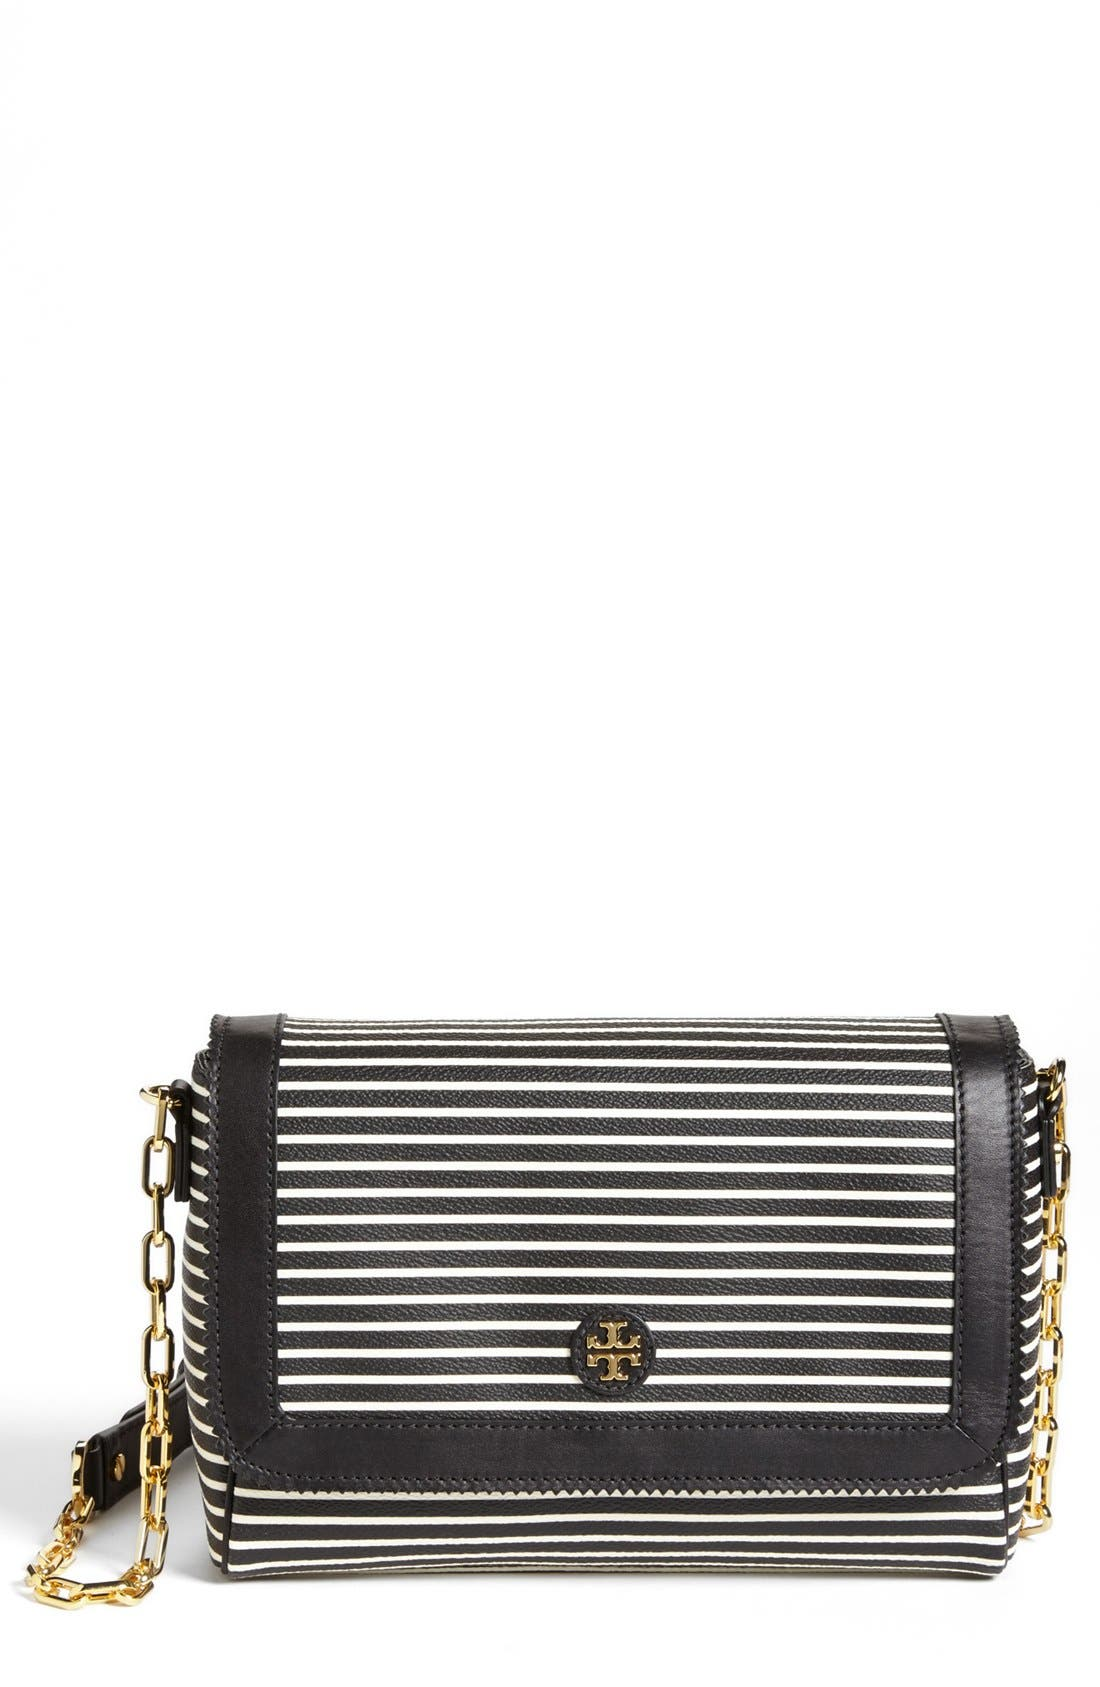 Main Image - Tory Burch 'Viva' Canvas & Leather Crossbody Bag